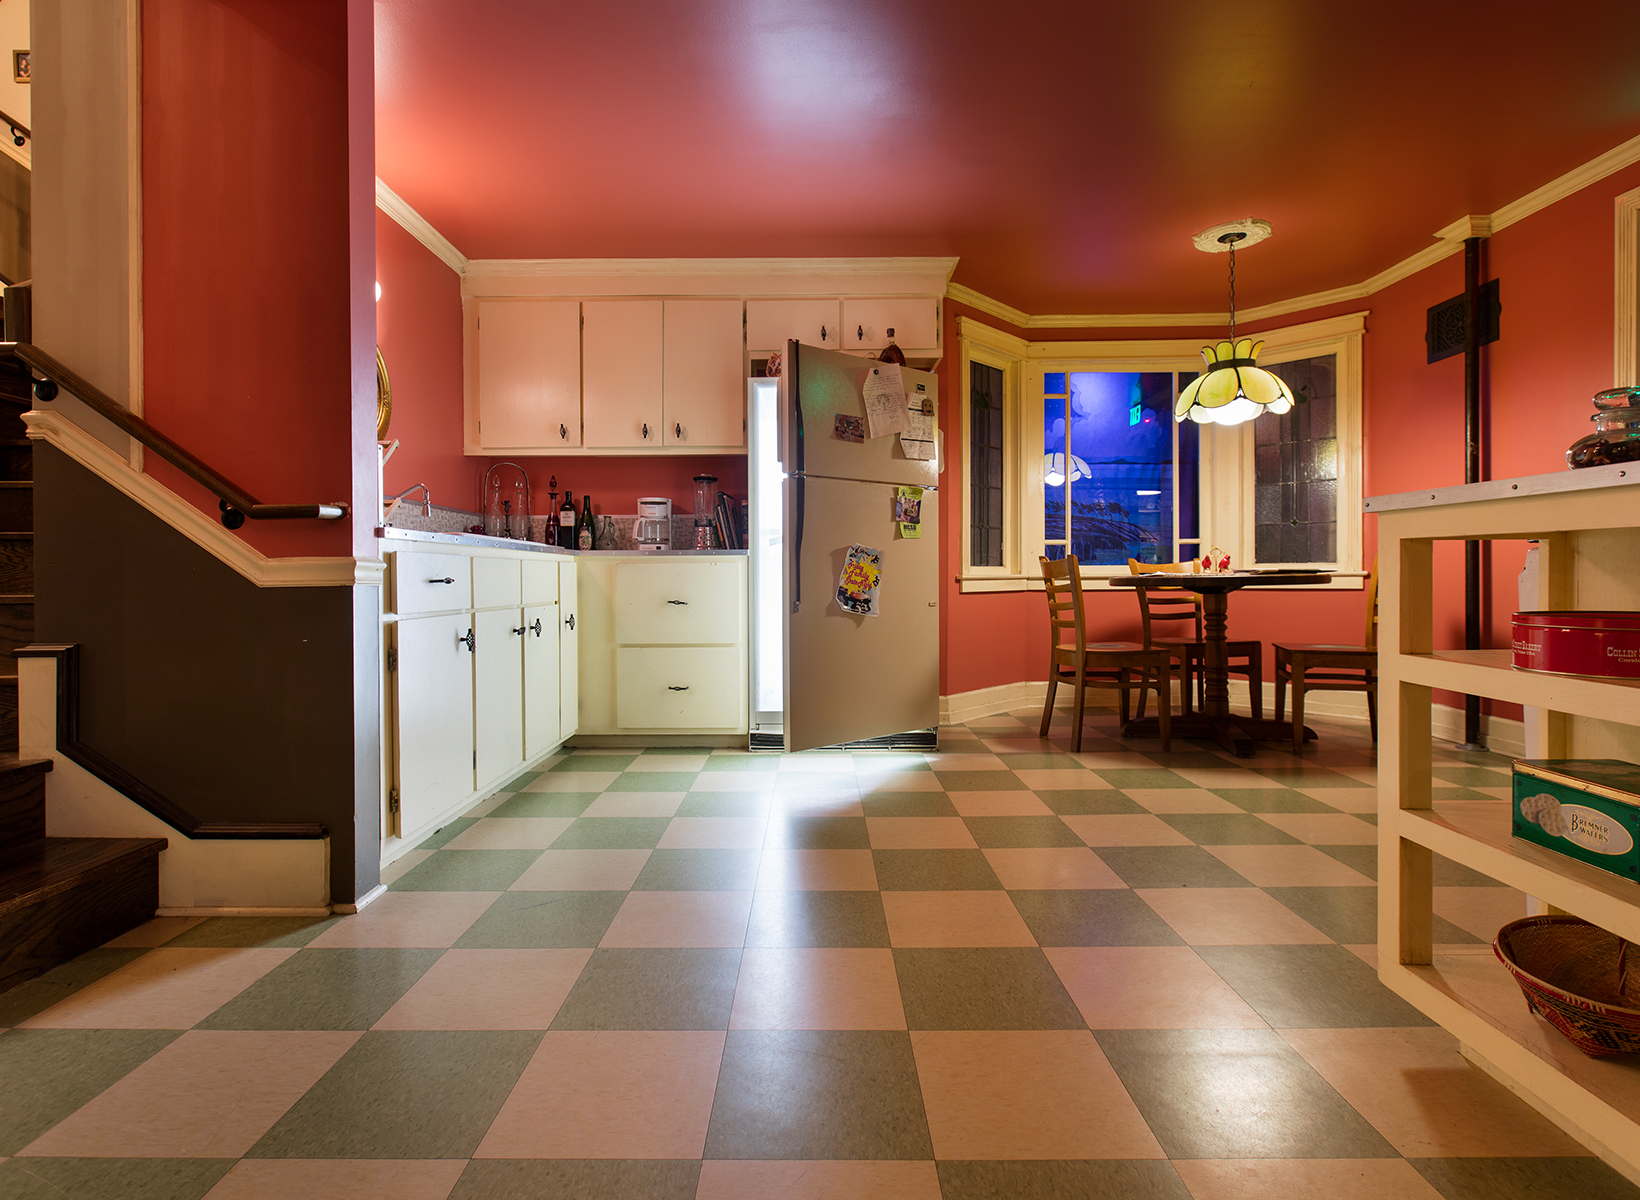 A kitchen scene from Meow Wolf's immersive art installation that bridges the real and imaginary world. Photo courtesy of Meow Wolf.